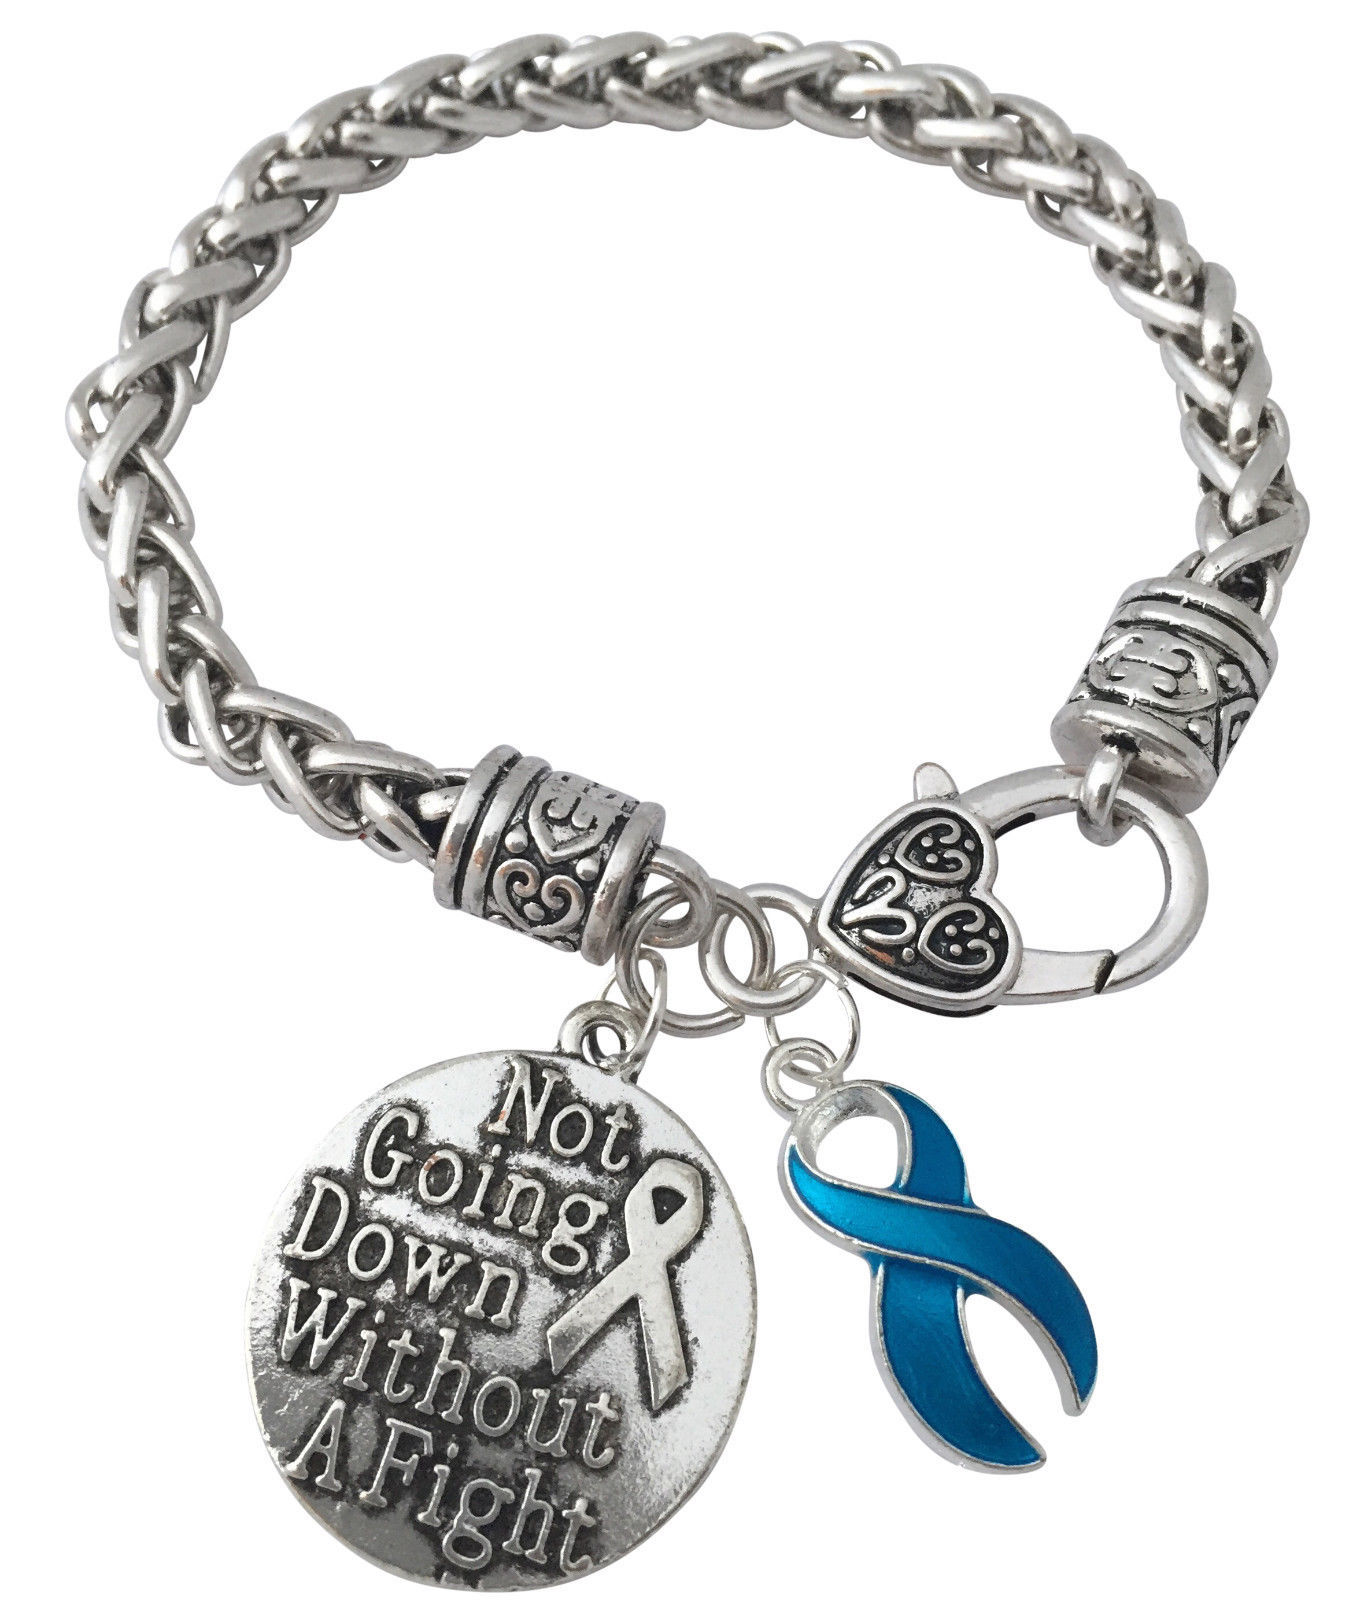 Blue Cancer Ribbon Not Going Down Without A Fight Silver Charm Bracelet